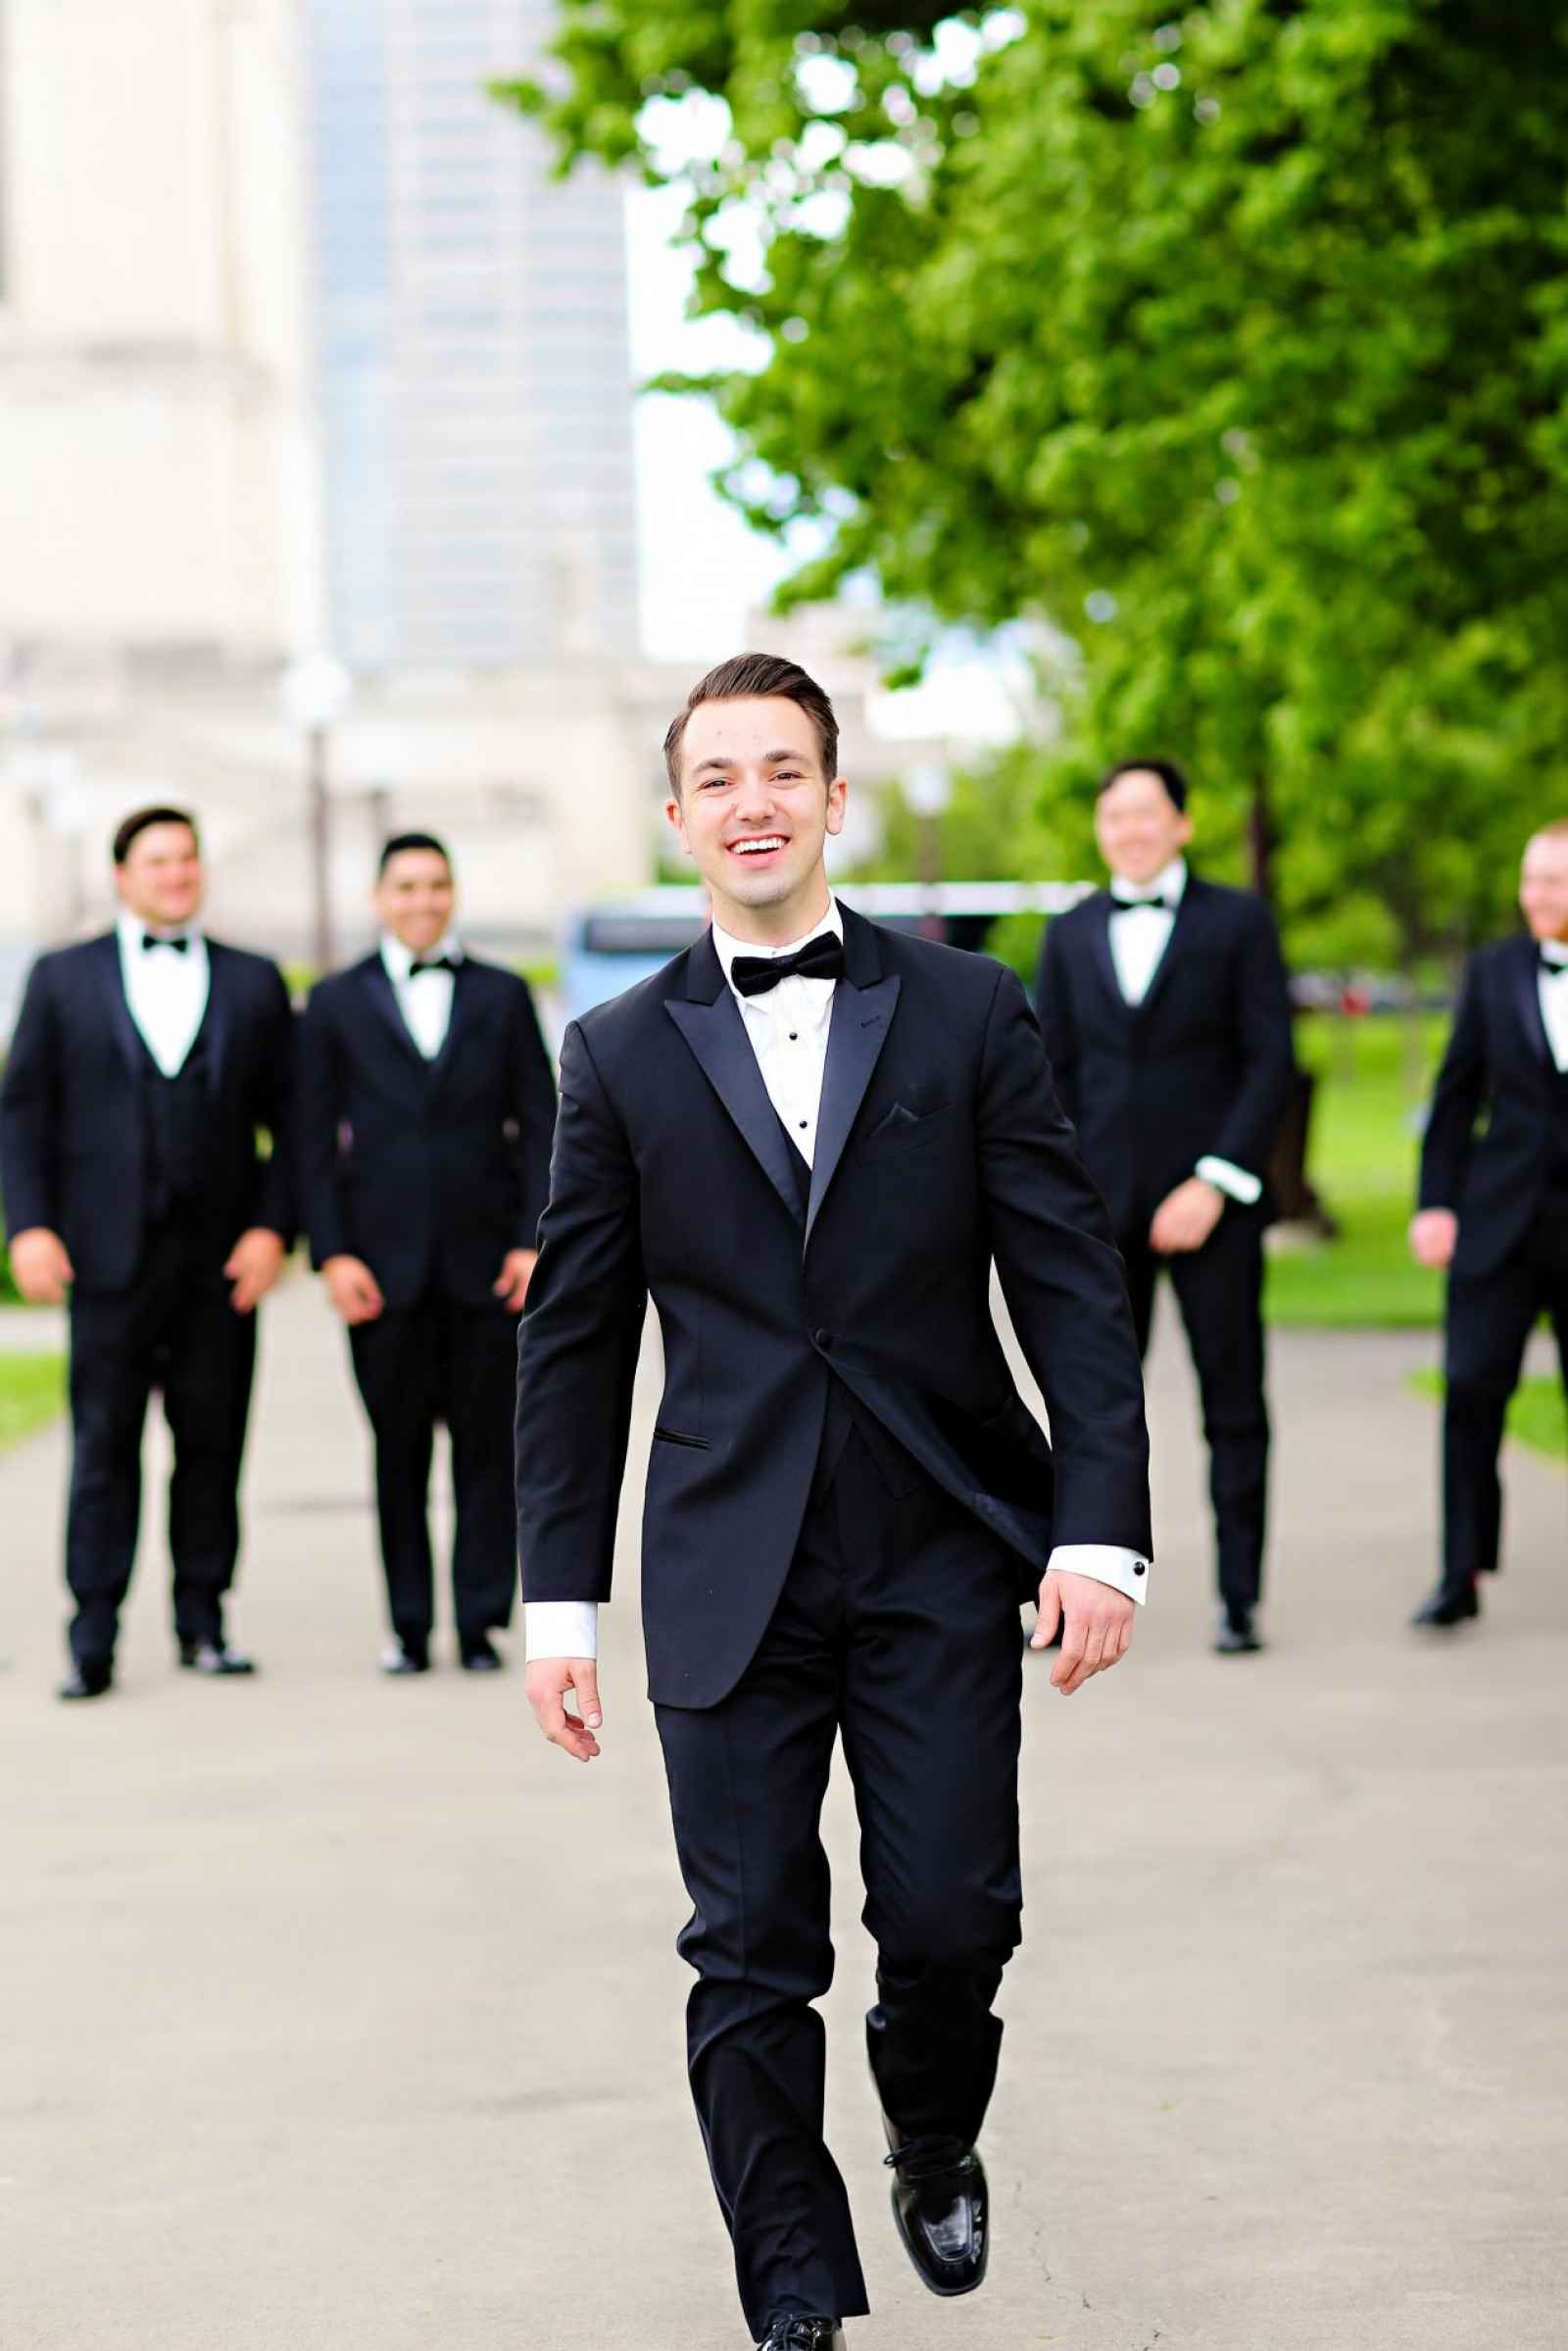 Classic black tux with bowtie for groom and groomsmen - The ...